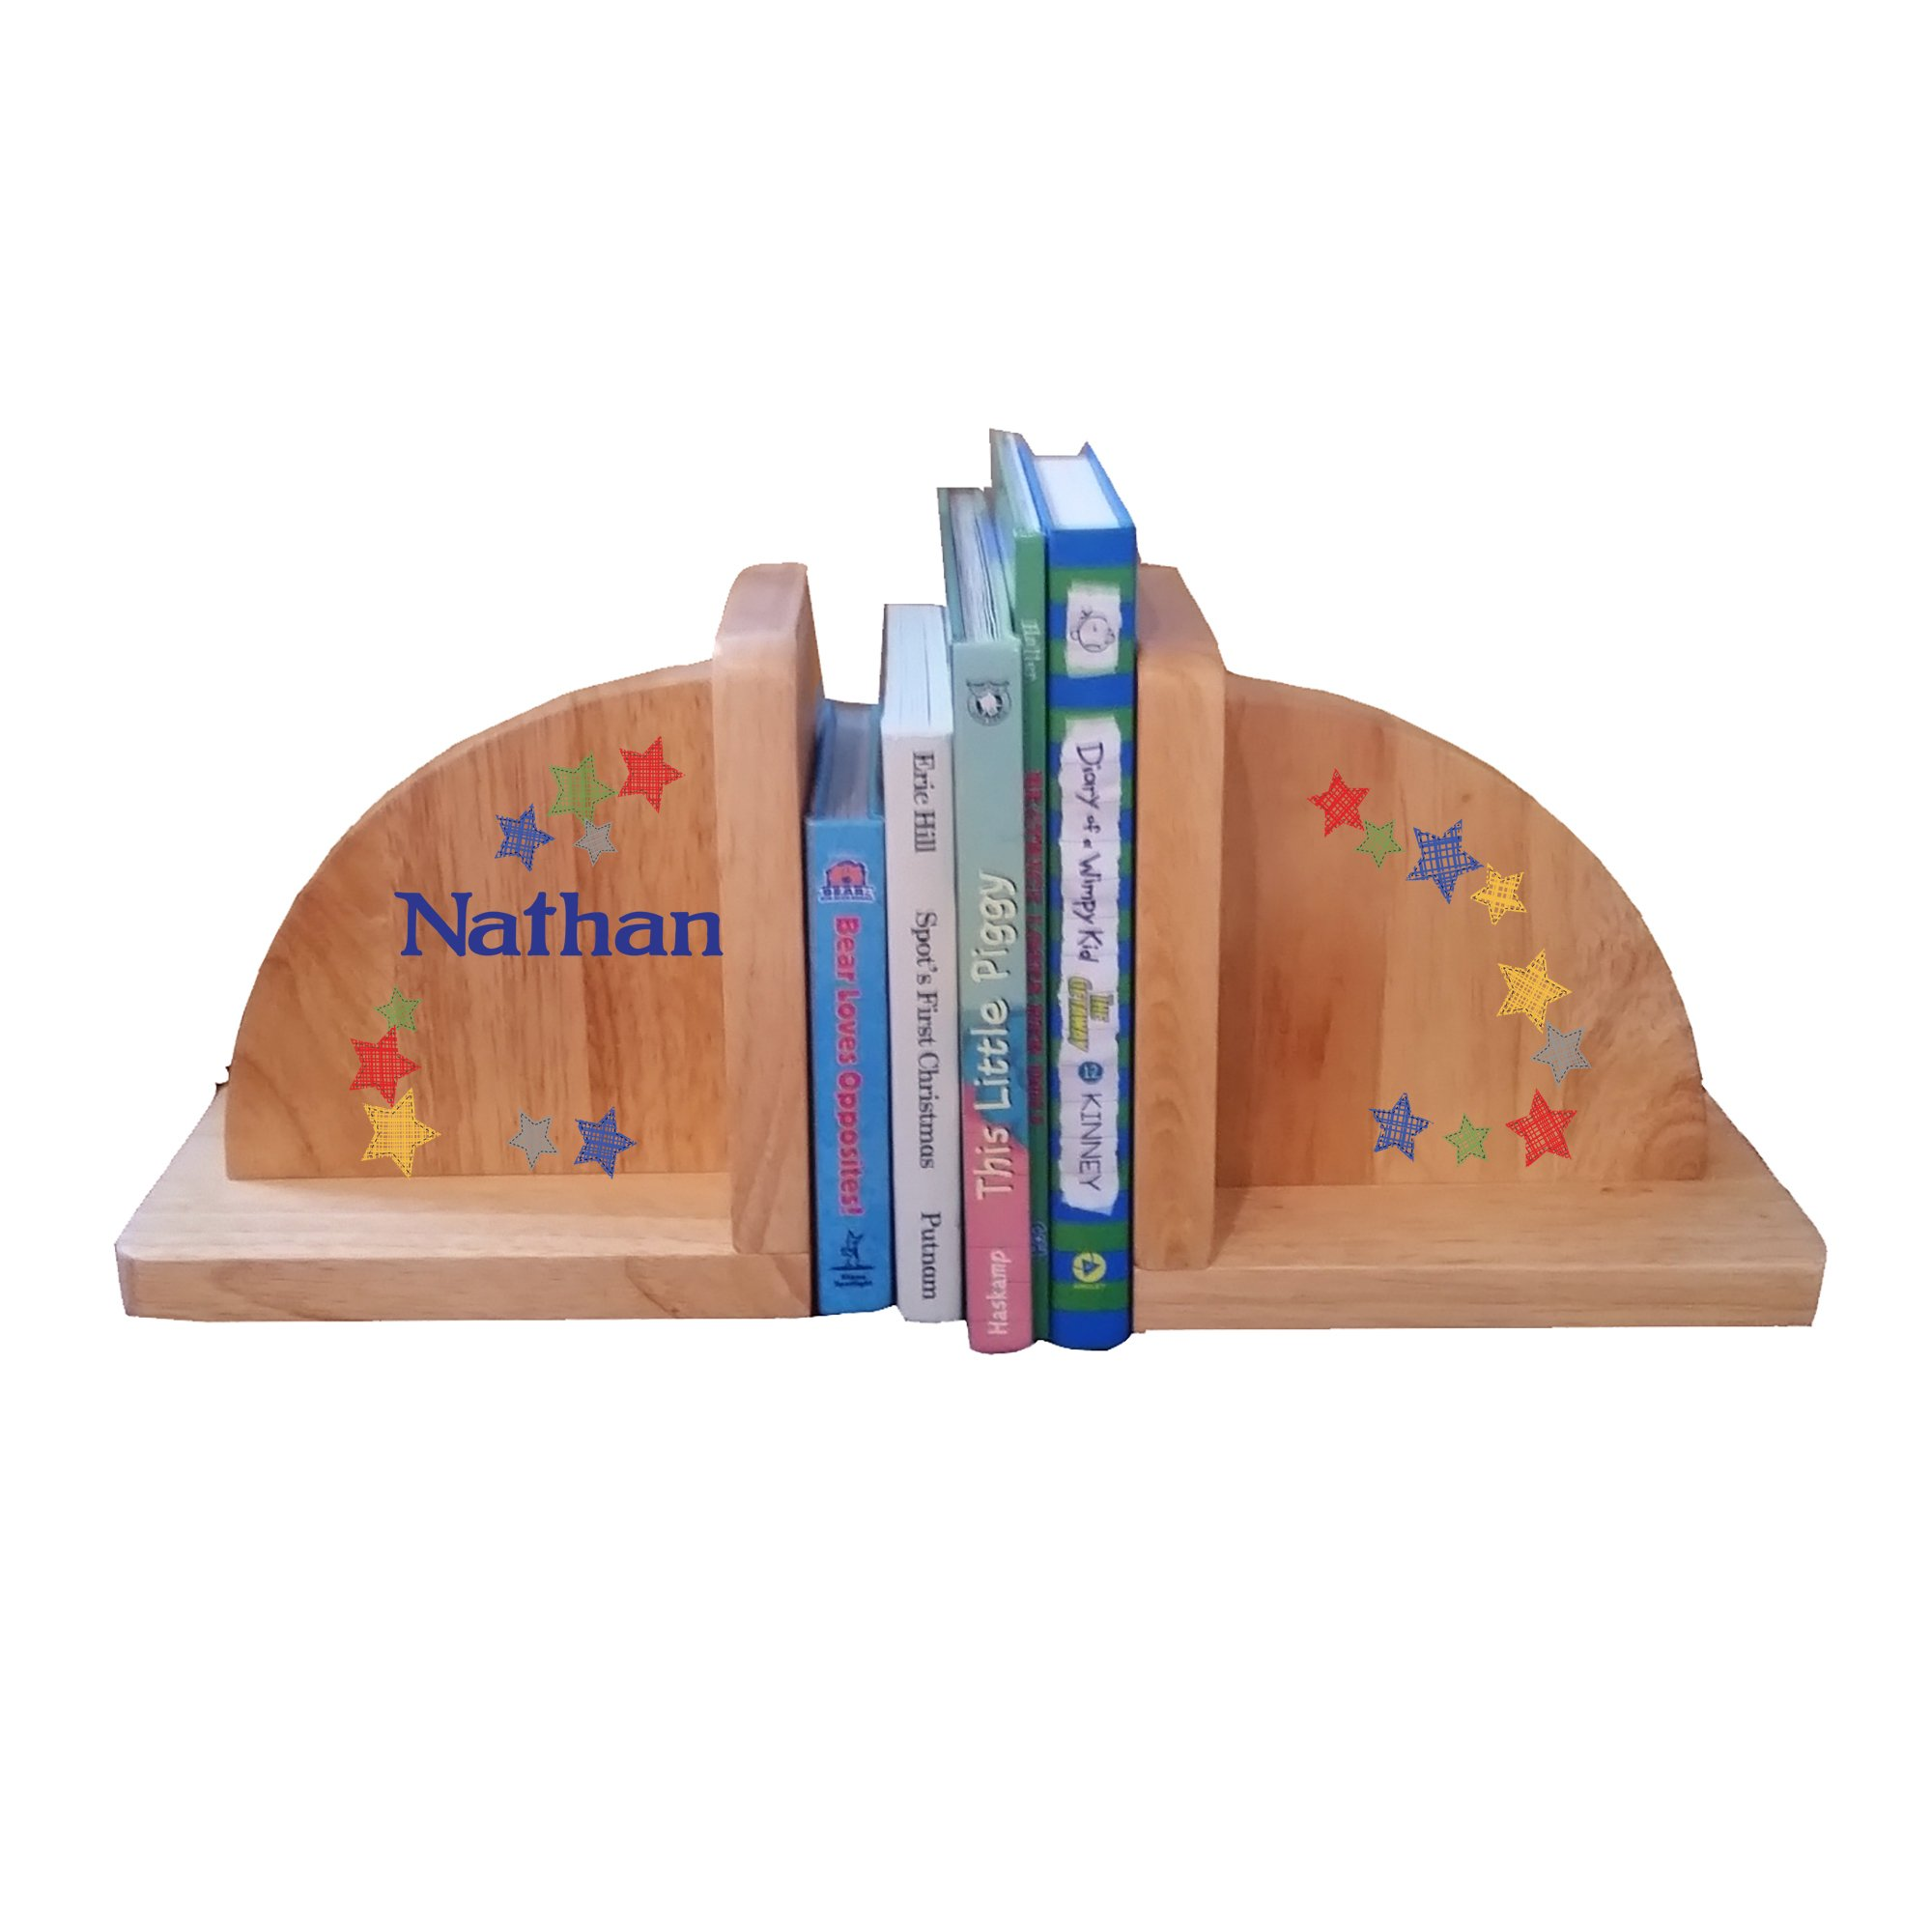 Personalized Stitched Stars Natural Childrens Wooden Bookends